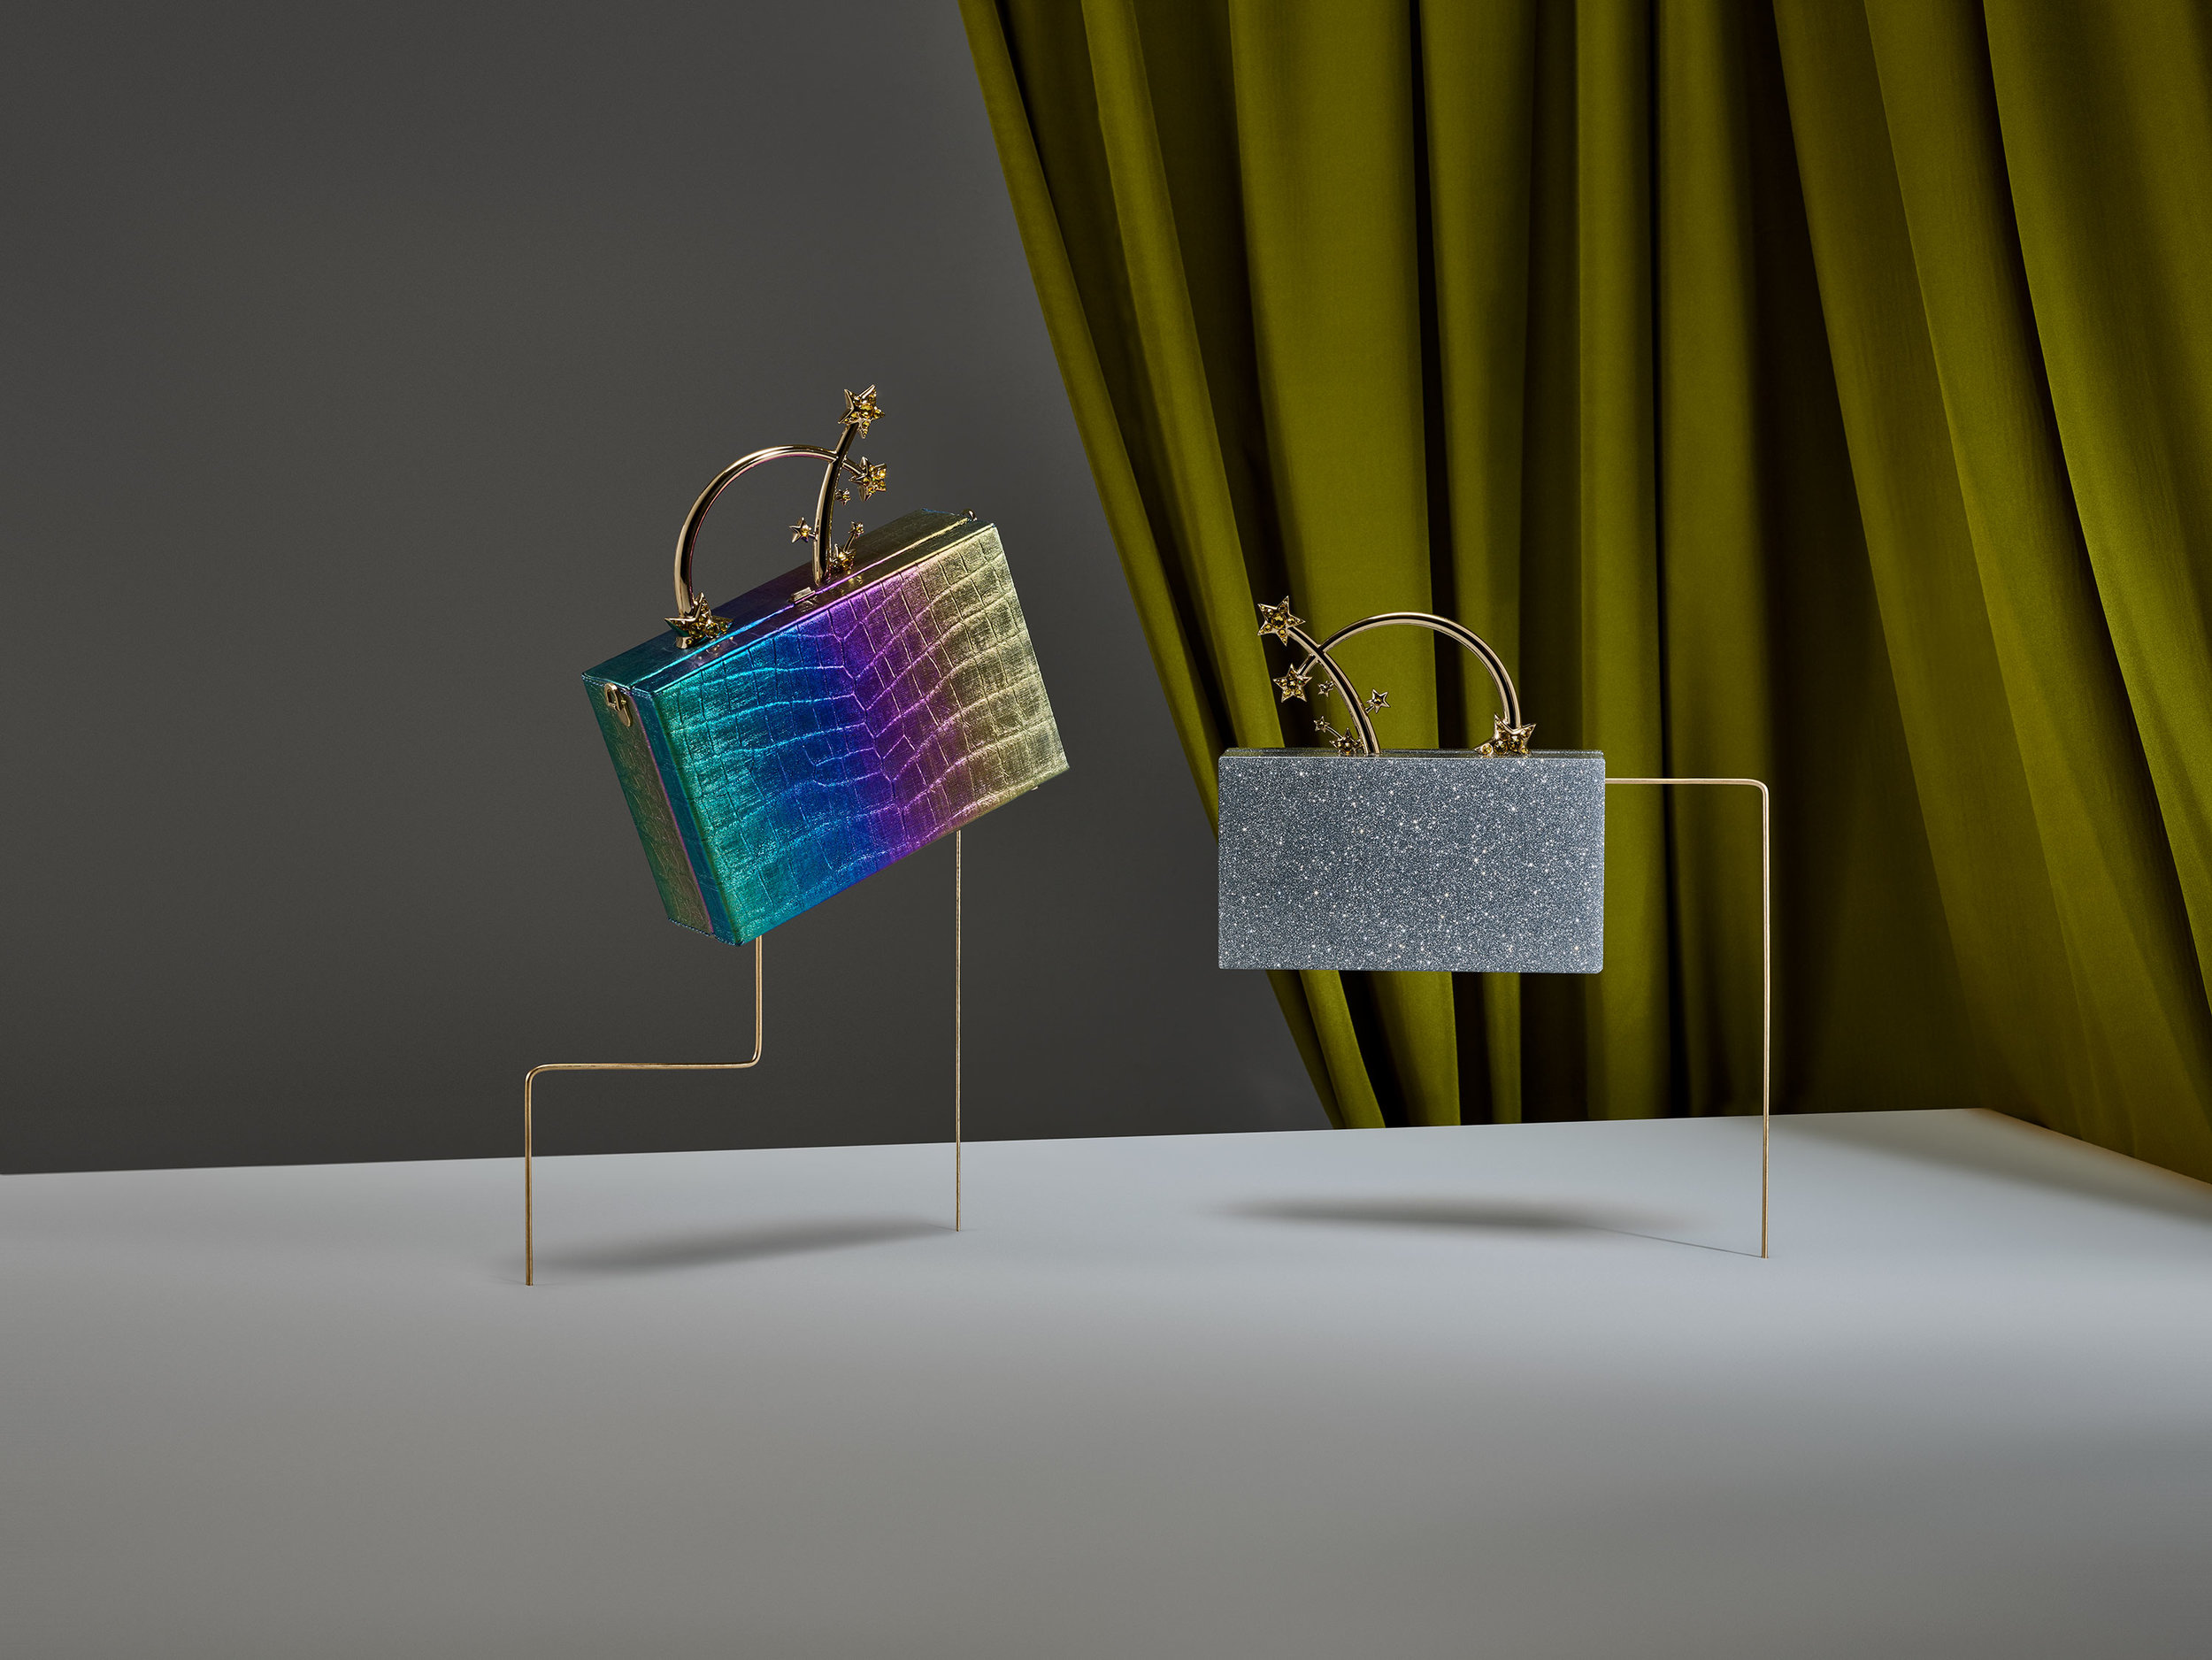 APPROACH_RETOUCH_STILL_LIFE_MING_RAY_AW19_5.jpg